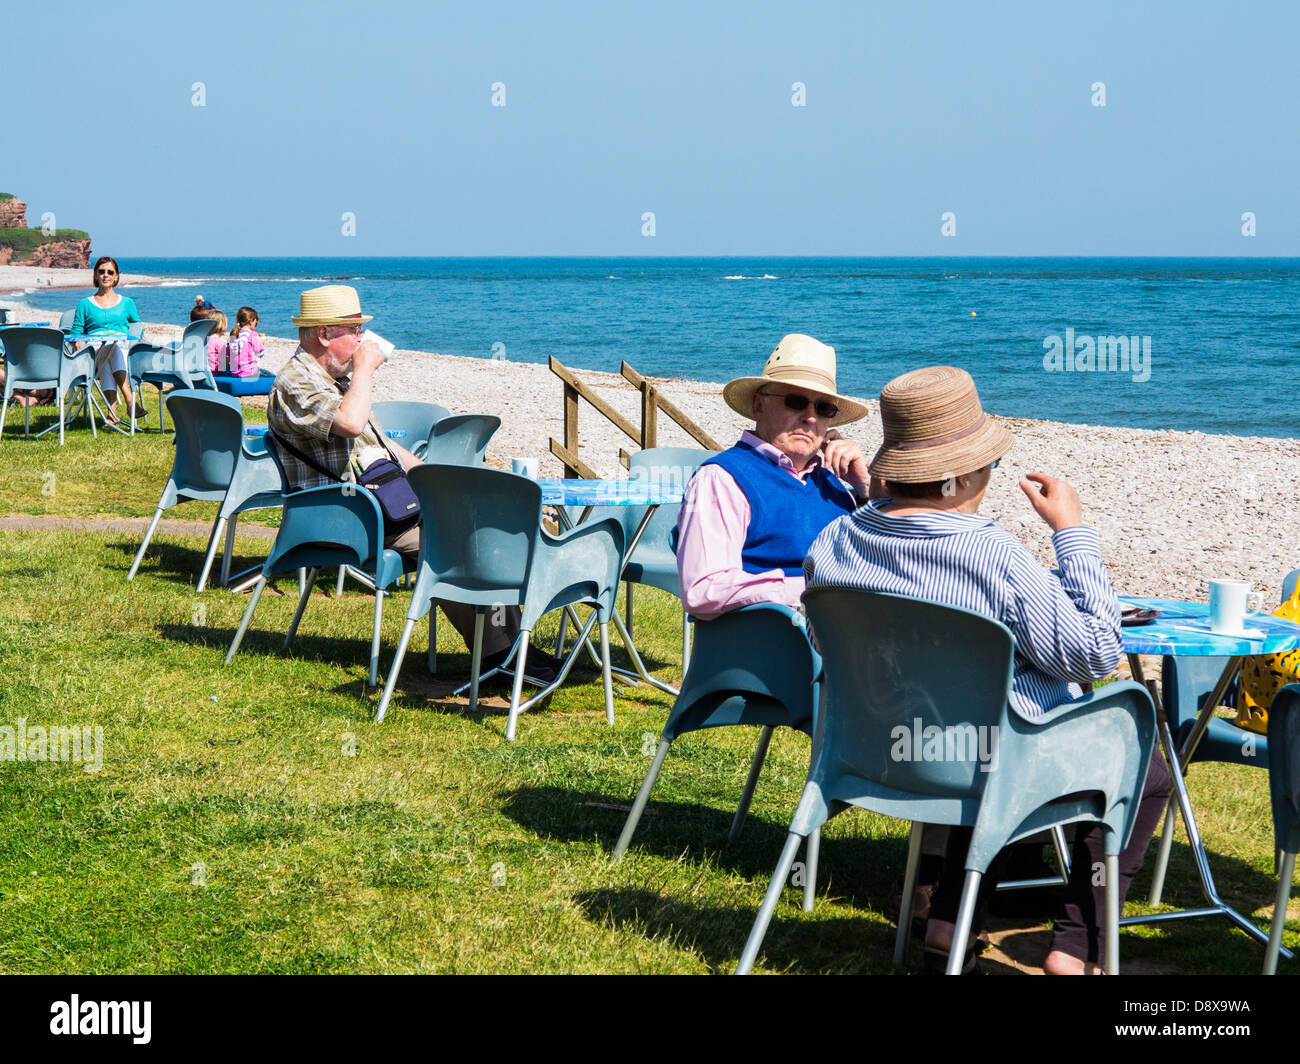 People eating and drinking alfresco at the Longboat Cafe on the seafront at Budleigh Salterton, Devon, England - Stock Image